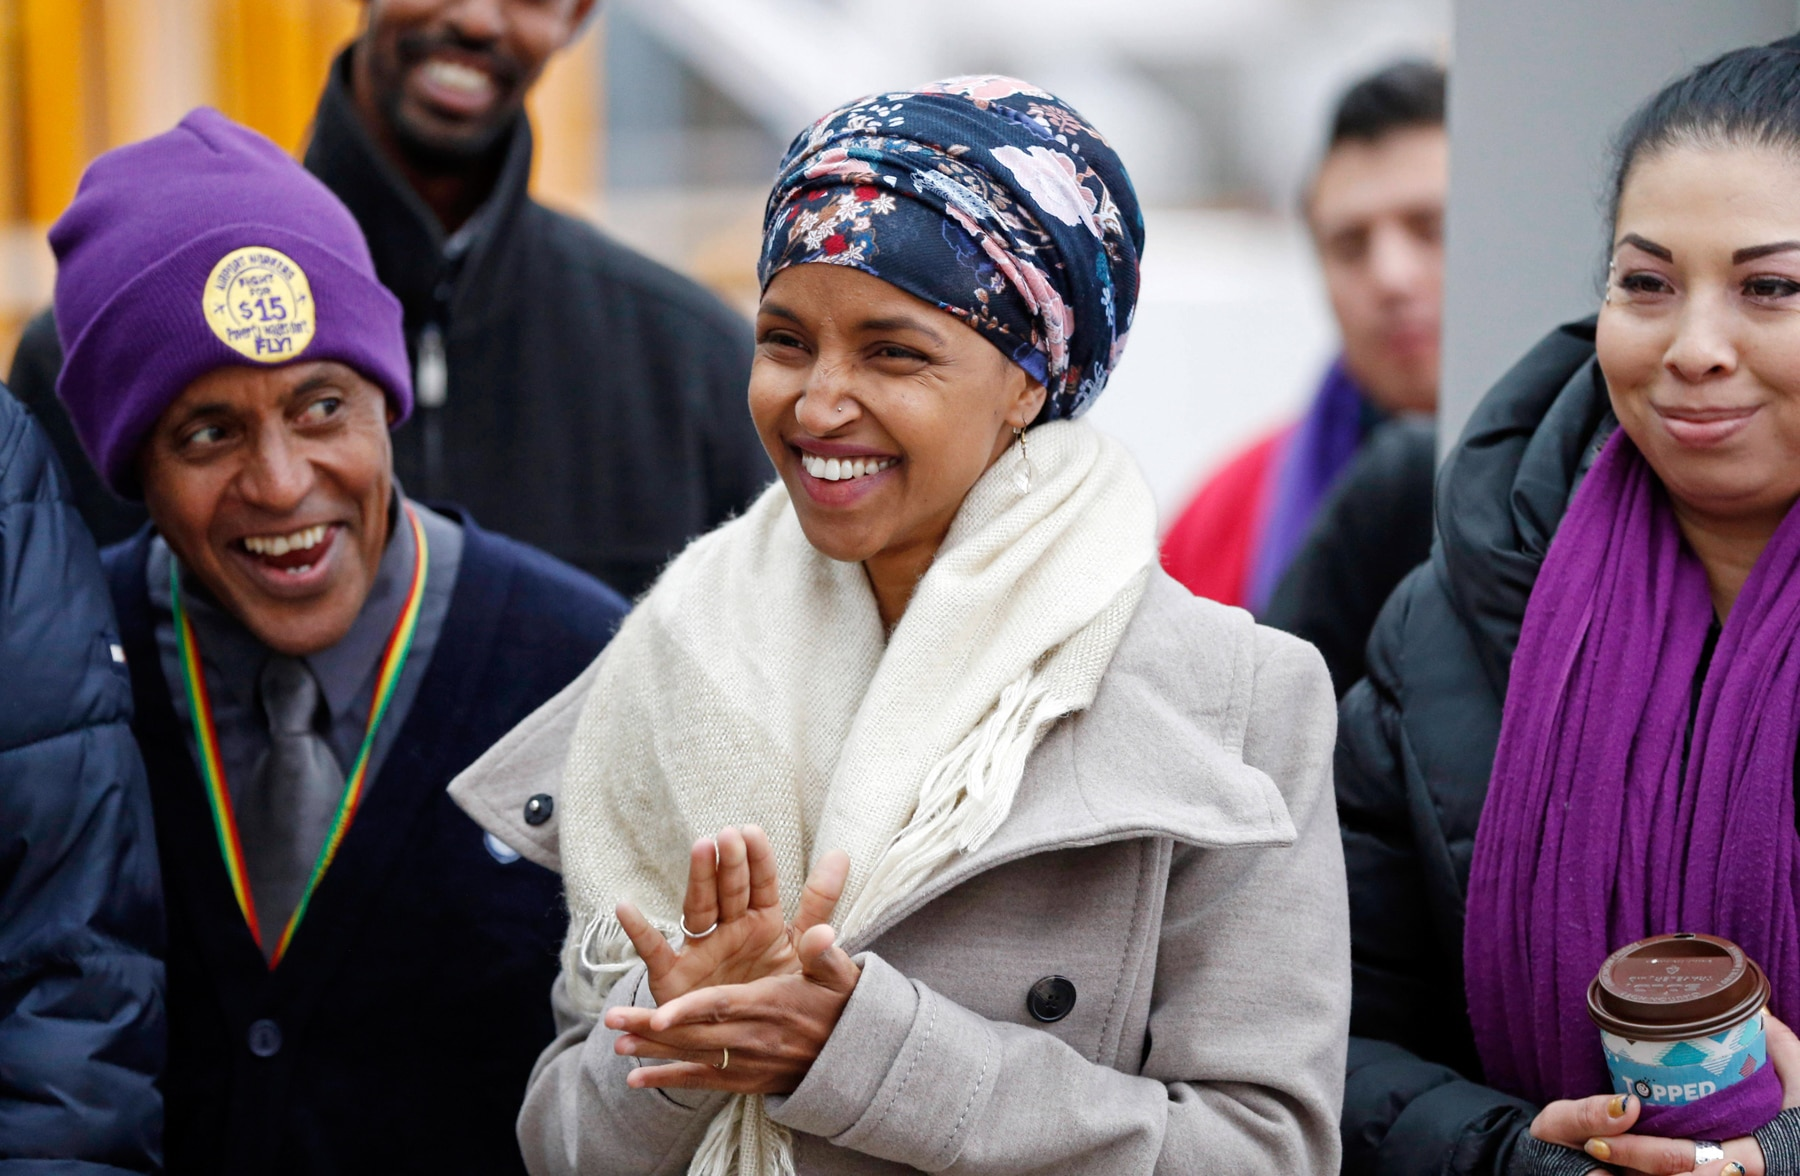 Ilhan Omar in crowd, clapping (© AP Images)